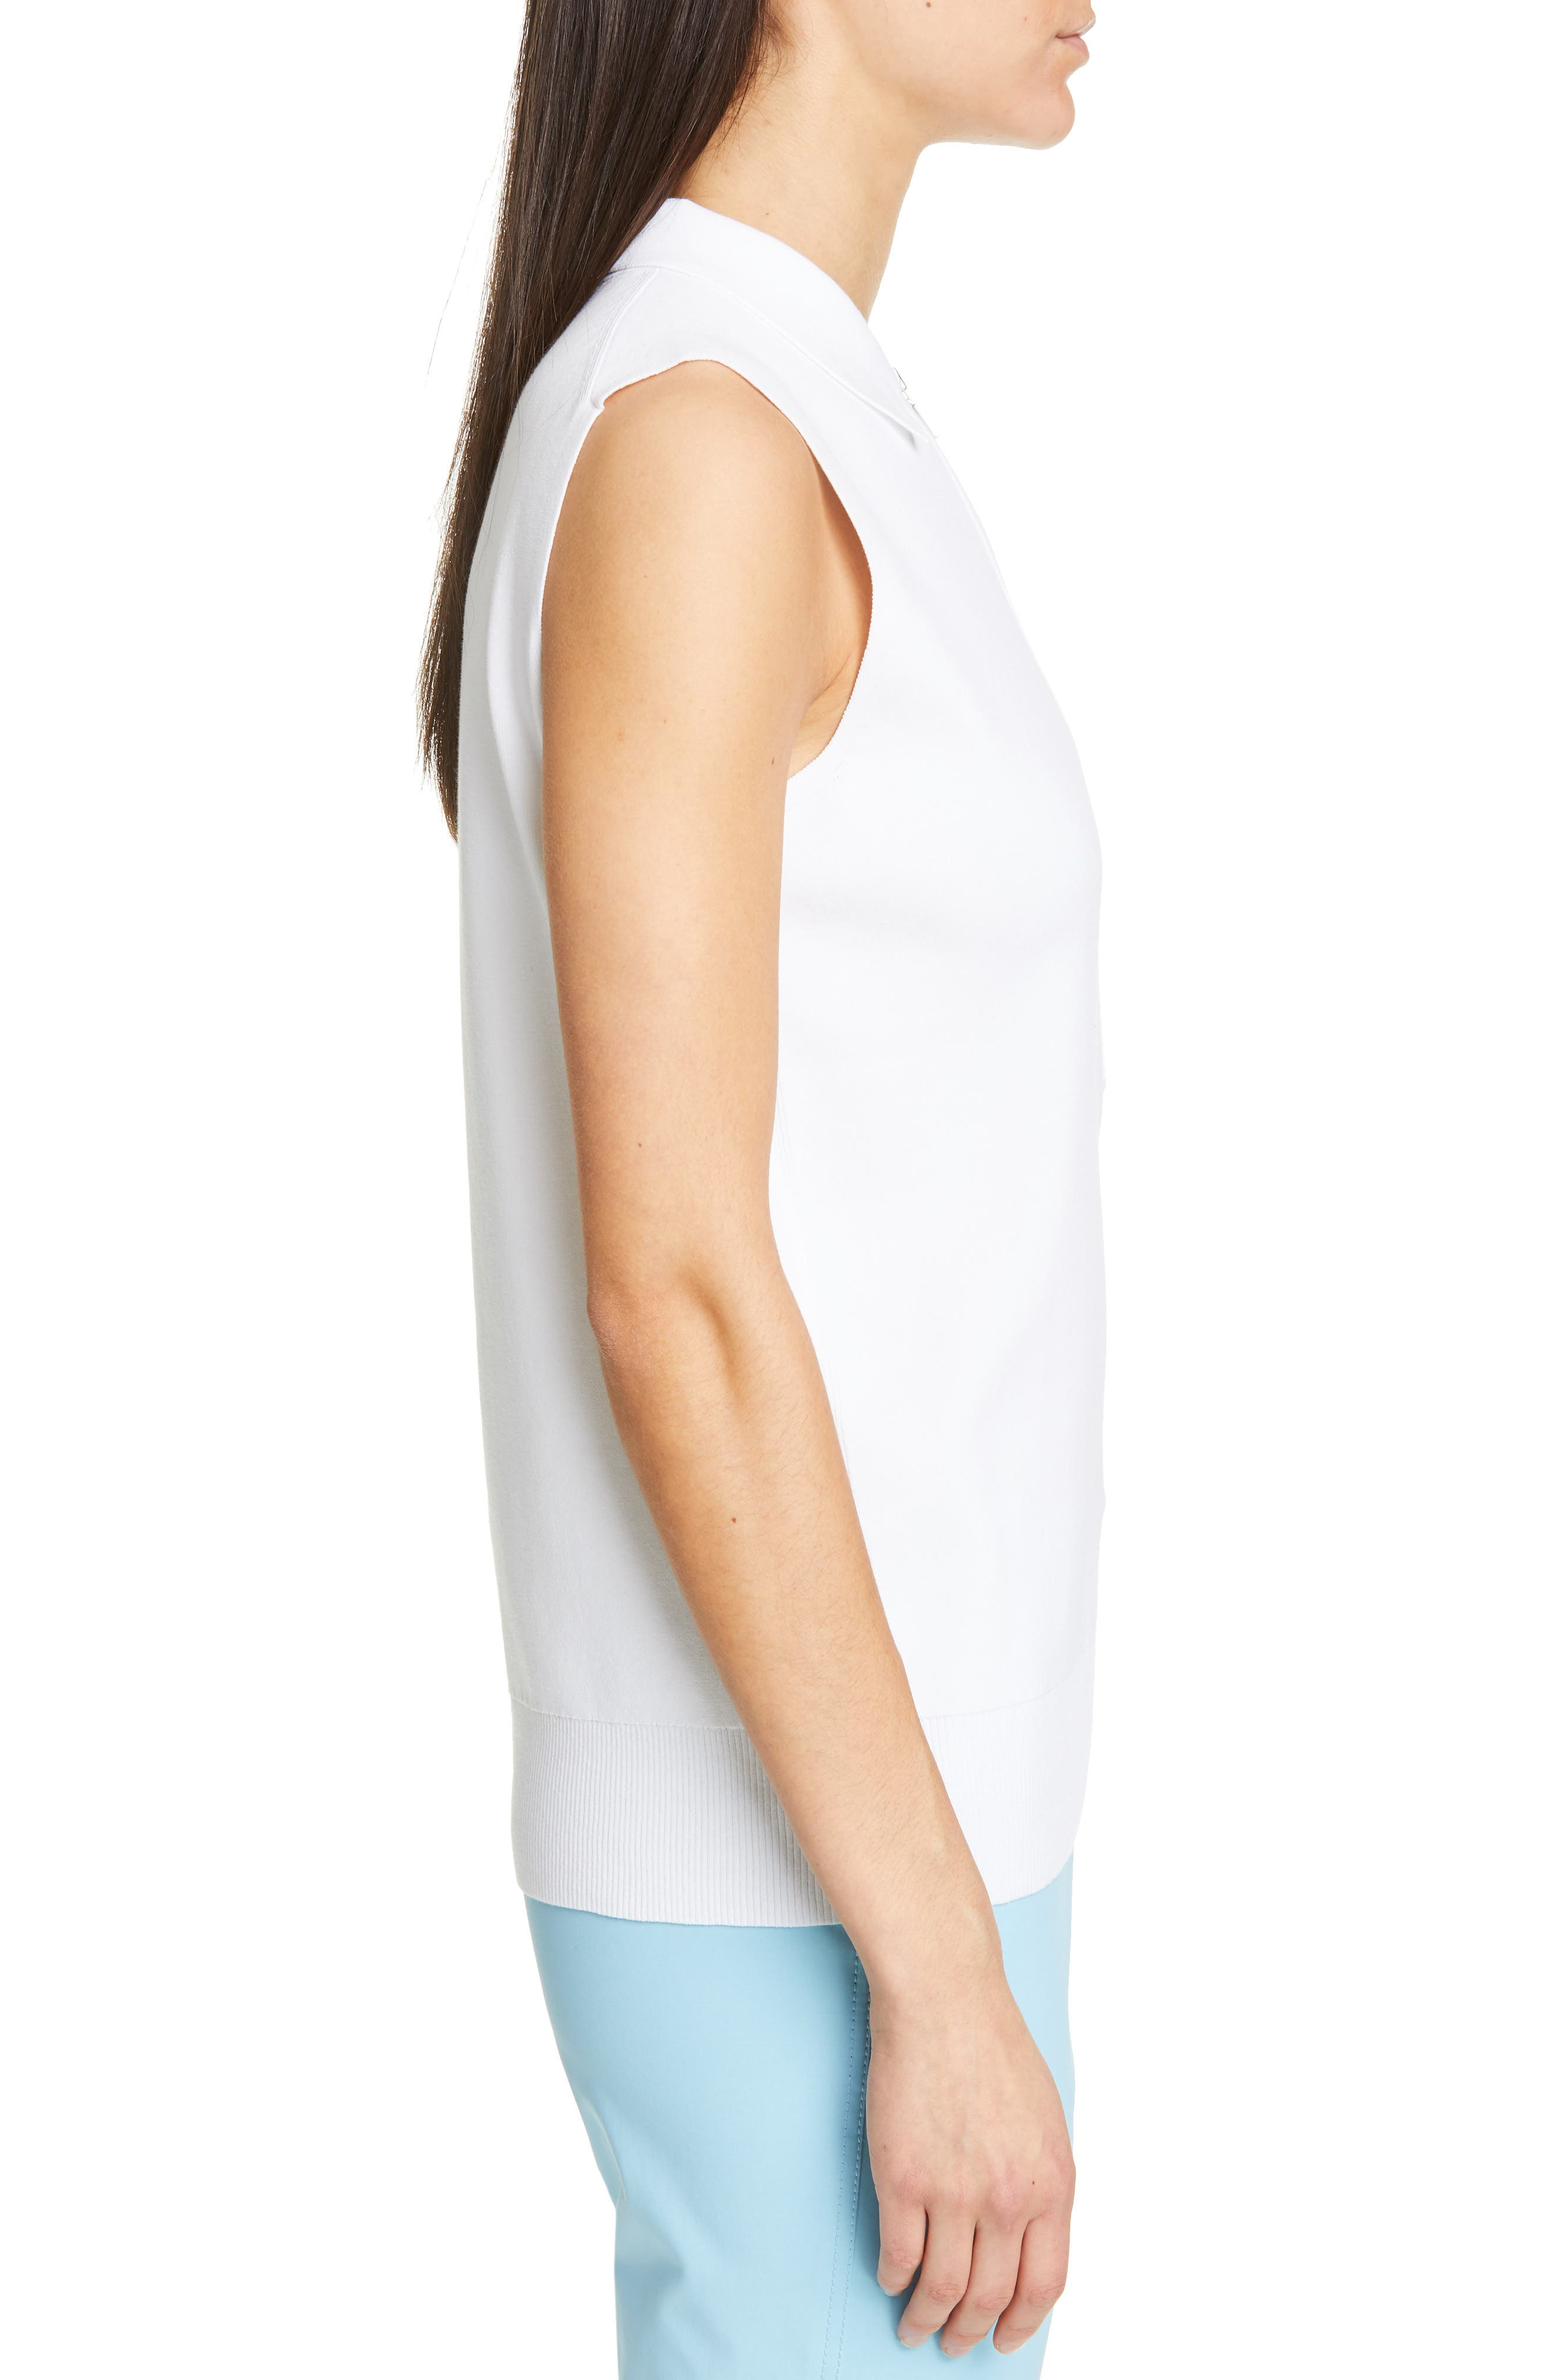 LAFAYETTE 148 NEW YORK, Lafayette Fitted Sleeveless Polo Sweater, Alternate thumbnail 3, color, WHITE